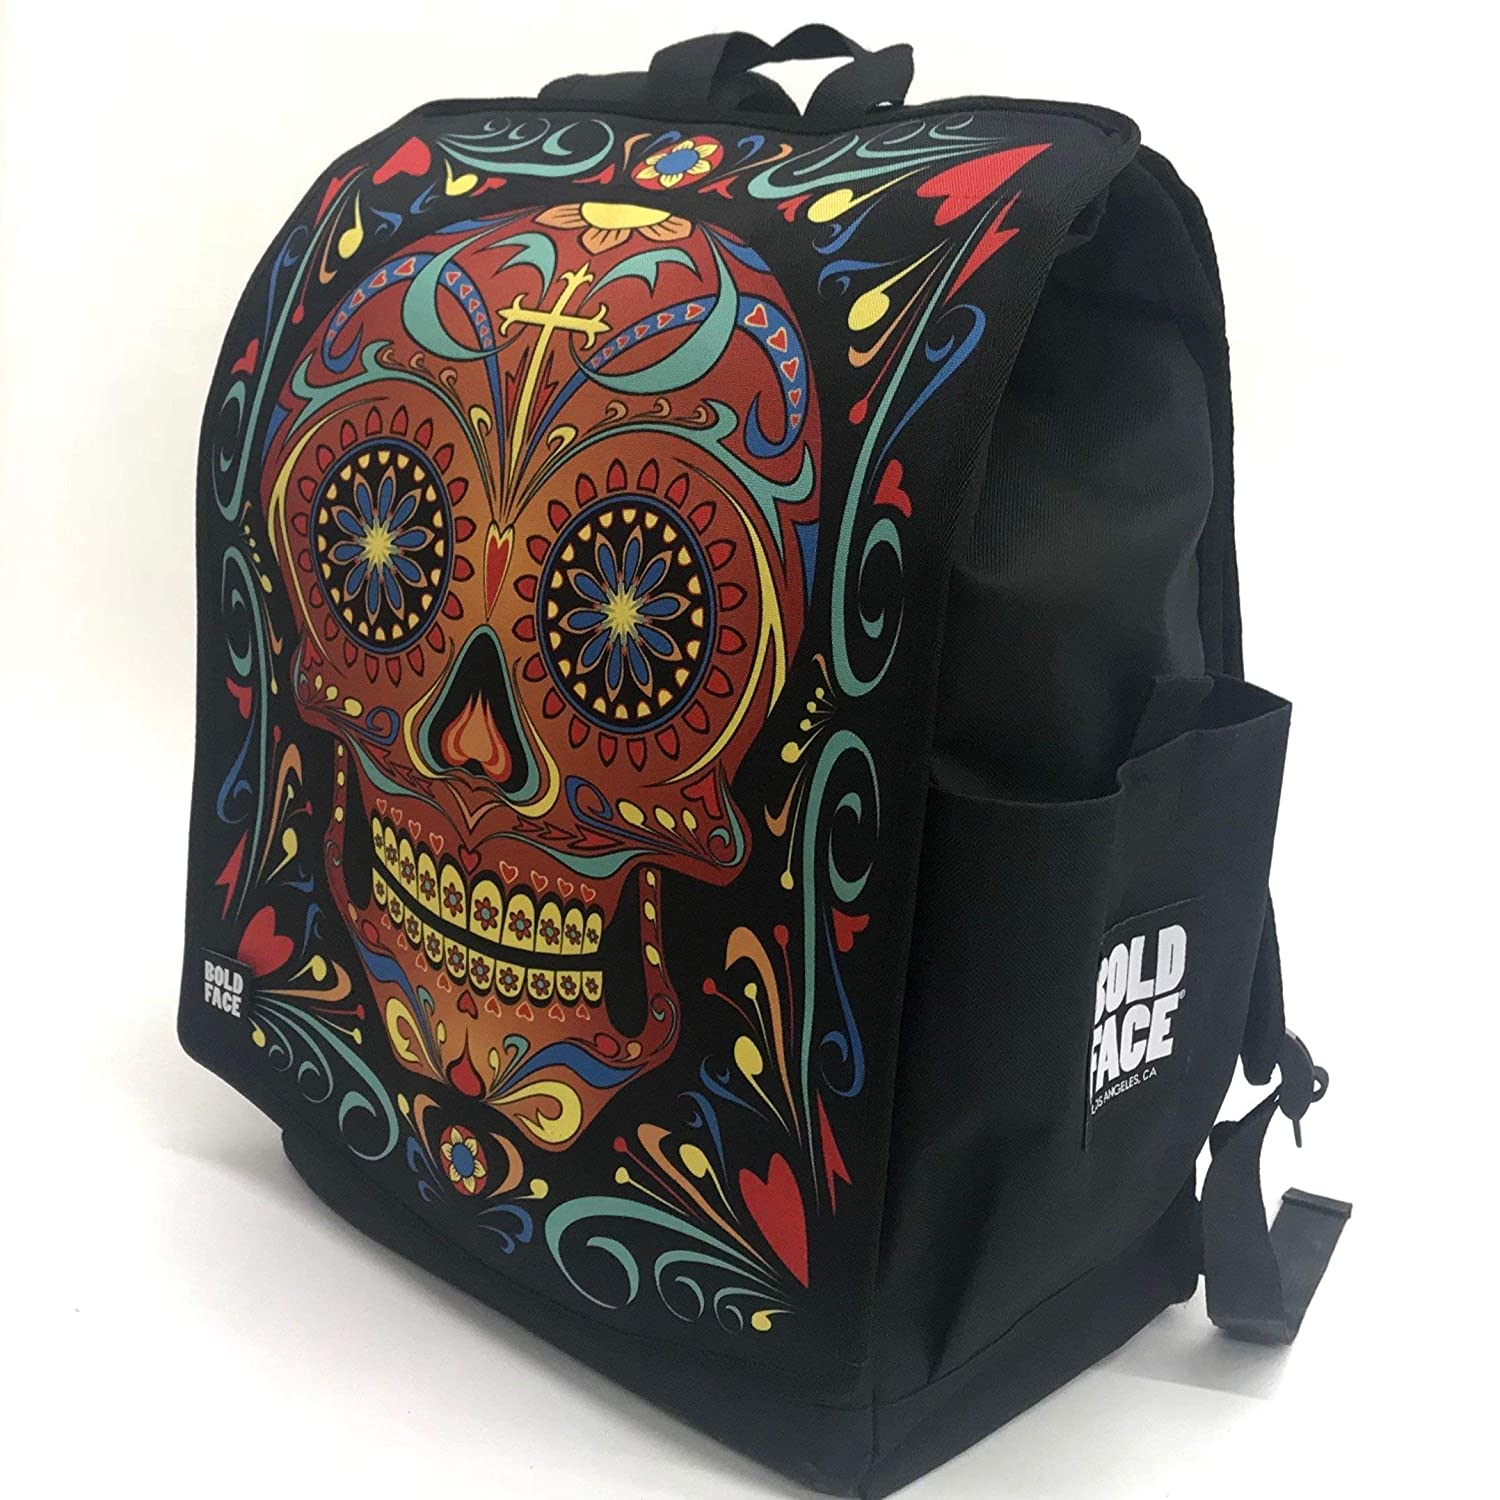 Day of The Dead/Dia de Los Muertos Sugar Skull Backpack by Boldface 728461204200